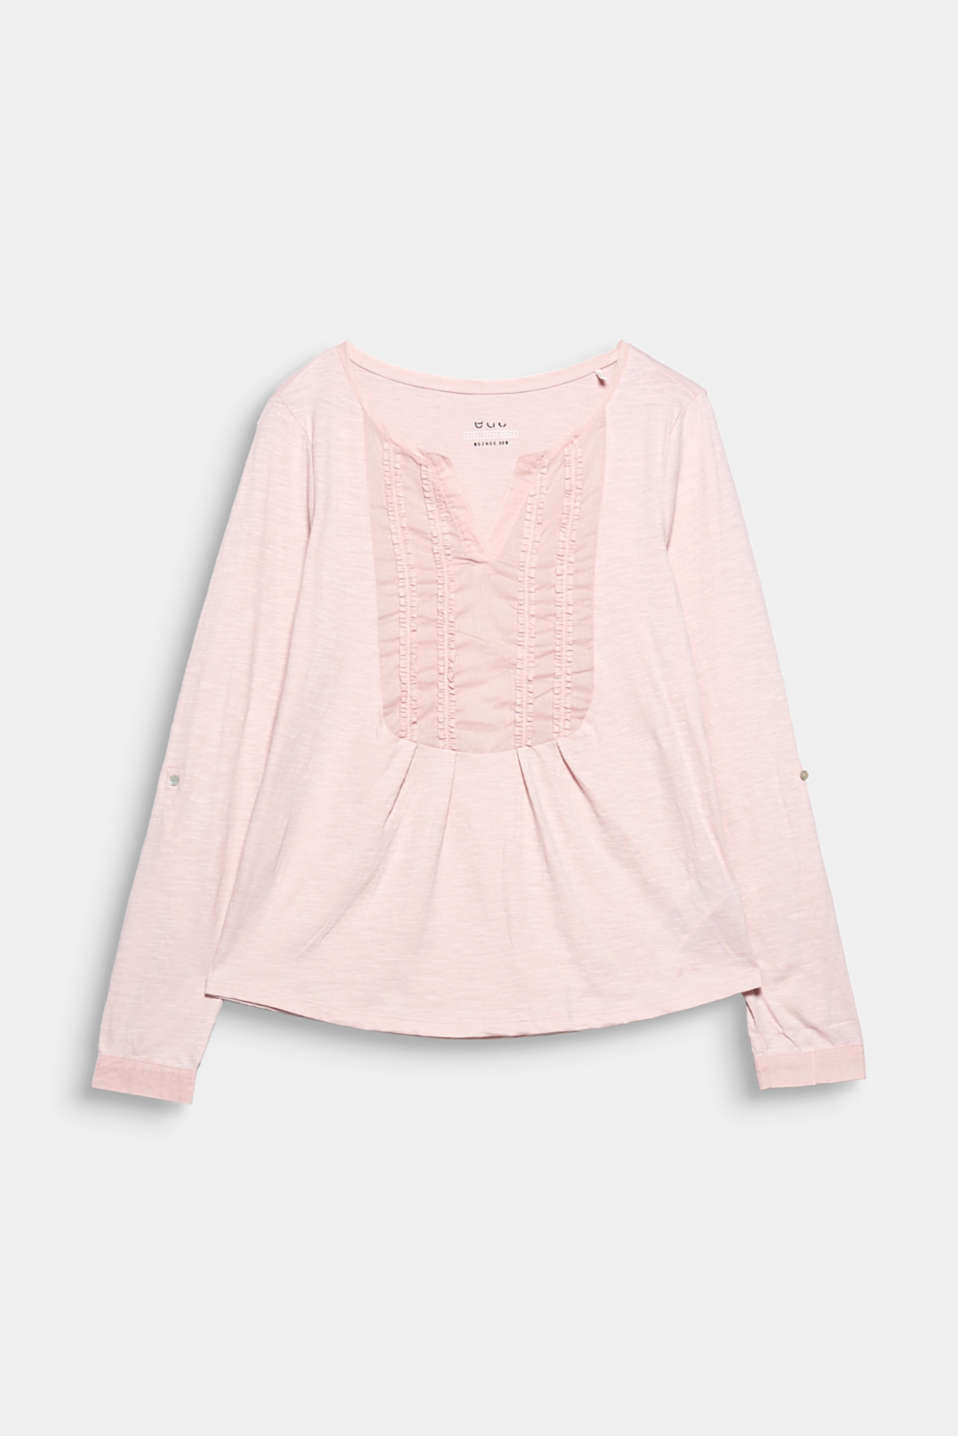 The mix of casual details and pretty frills gives this cotton slub top its fresh look!